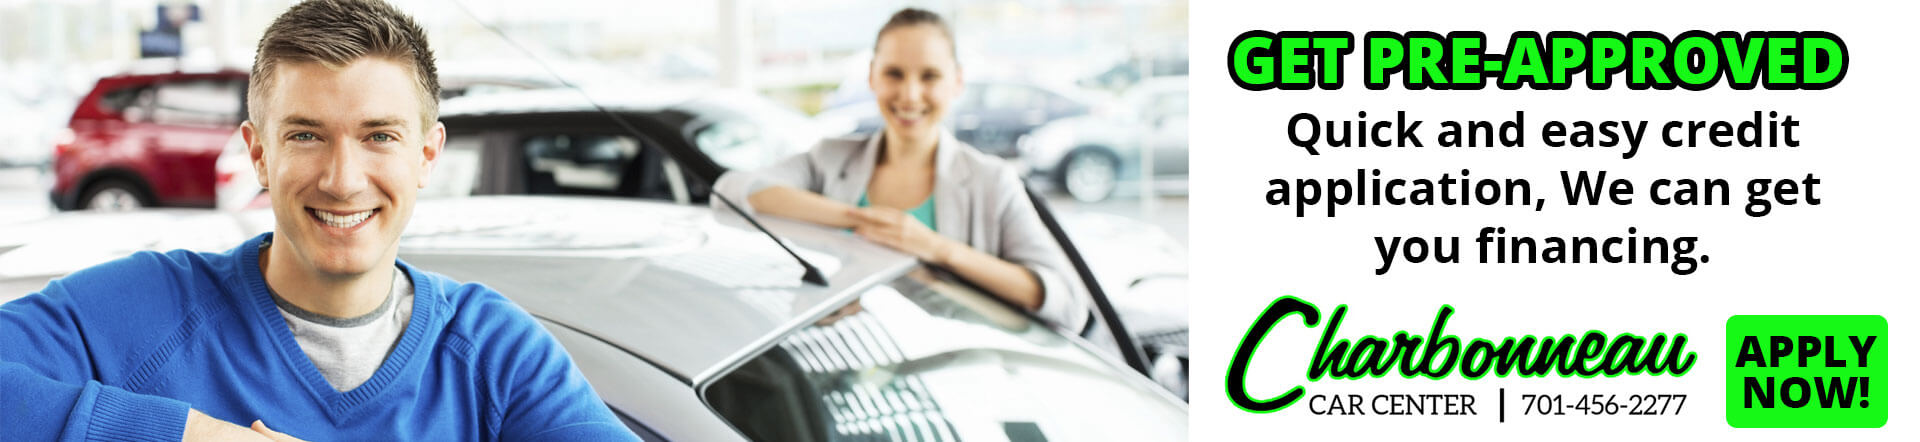 Apply for Credit at Charbonneau Car Center